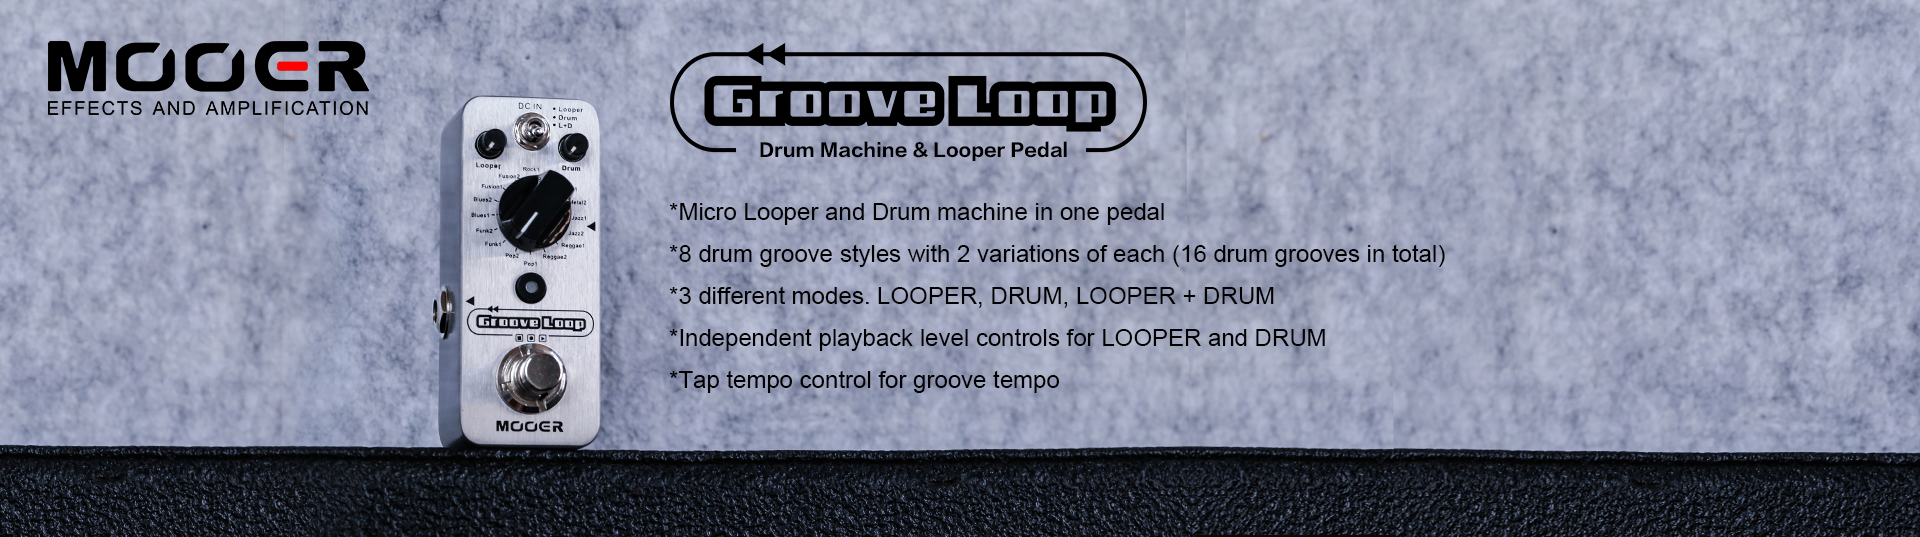 Groove Loop_Shenzhen Mooer Audio Co , Ltd